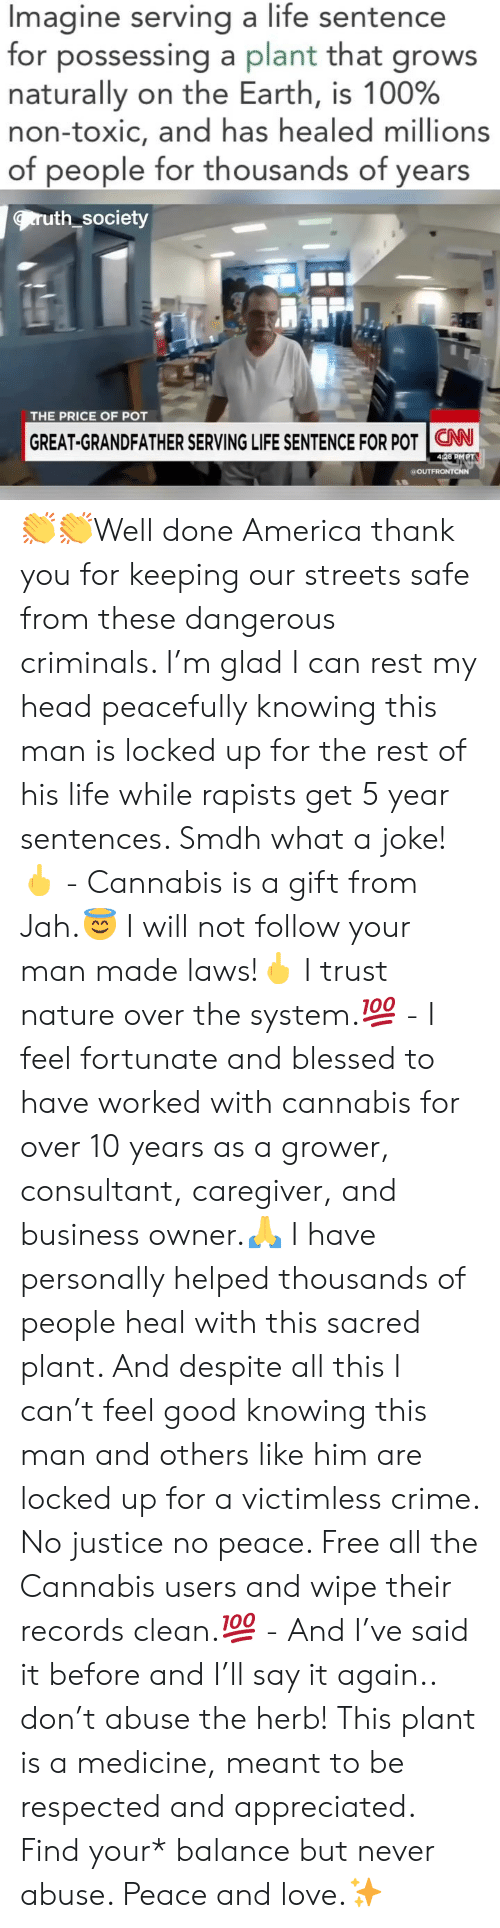 America, Anaconda, and Blessed: Imagine serving a life sentence  for possessing a plant that grows  naturally on the Earth, is 100%  non-toxic, and has healed millions  of people for thousands of years  ruth society  THE PRICE OF POT  GREAT-GRANDFATHER SERVING LIFE SENTENCE FOR POT | CNN-  428 PMPT  a OUT 👏👏Well done America thank you for keeping our streets safe from these dangerous criminals. I'm glad I can rest my head peacefully knowing this man is locked up for the rest of his life while rapists get 5 year sentences. Smdh what a joke!🖕 - Cannabis is a gift from Jah.😇 I will not follow your man made laws!🖕 I trust nature over the system.💯 - I feel fortunate and blessed to have worked with cannabis for over 10 years as a grower, consultant, caregiver, and business owner.🙏 I have personally helped thousands of people heal with this sacred plant. And despite all this I can't feel good knowing this man and others like him are locked up for a victimless crime. No justice no peace. Free all the Cannabis users and wipe their records clean.💯 - And I've said it before and I'll say it again.. don't abuse the herb! This plant is a medicine, meant to be respected and appreciated. Find your* balance but never abuse. Peace and love.✨